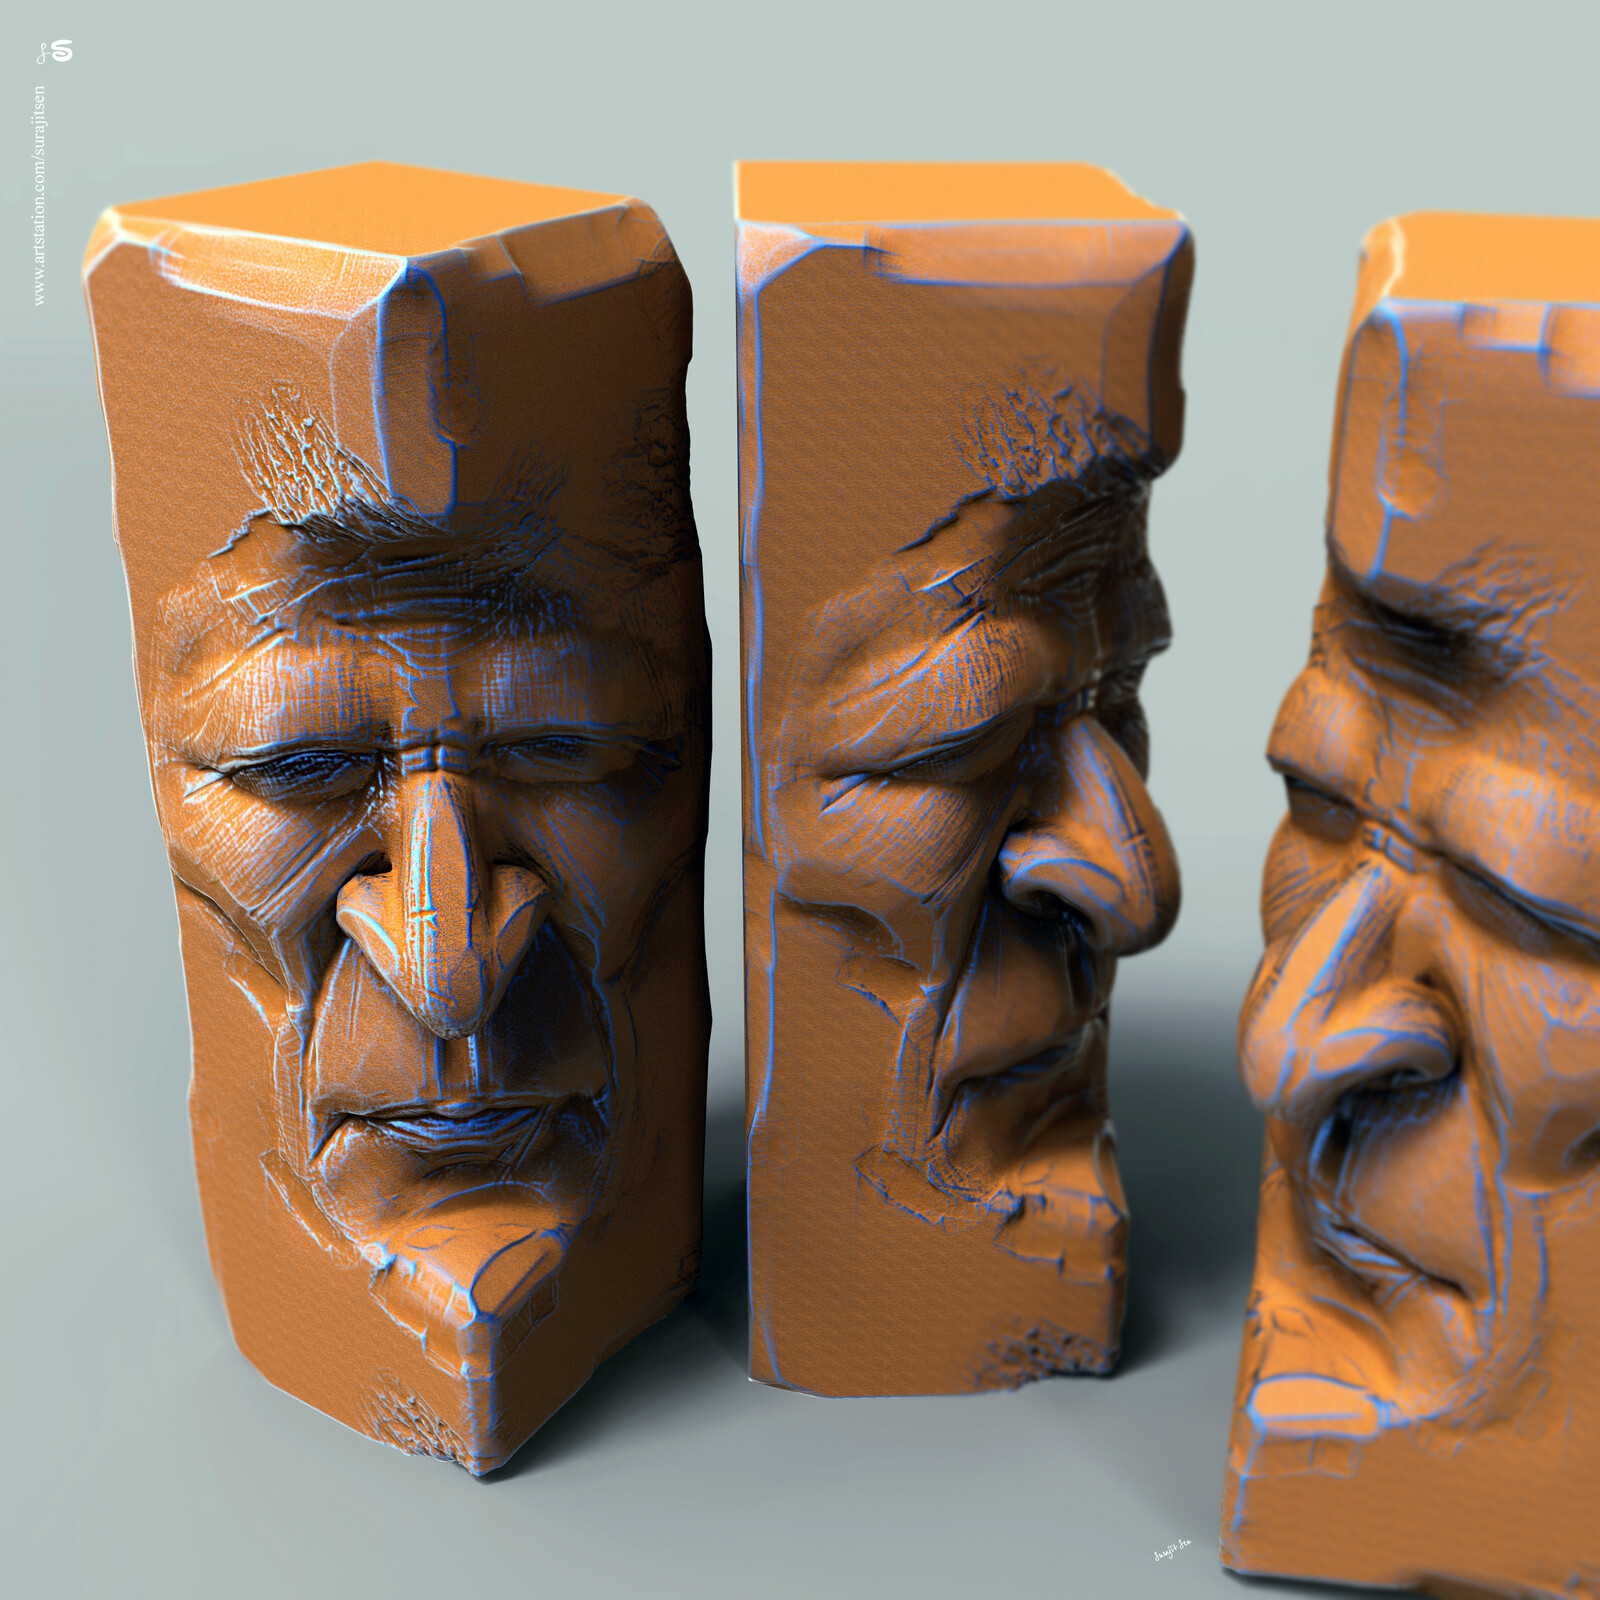 #doodle Quick blocking... Played with brushes. Digital Sculpture.